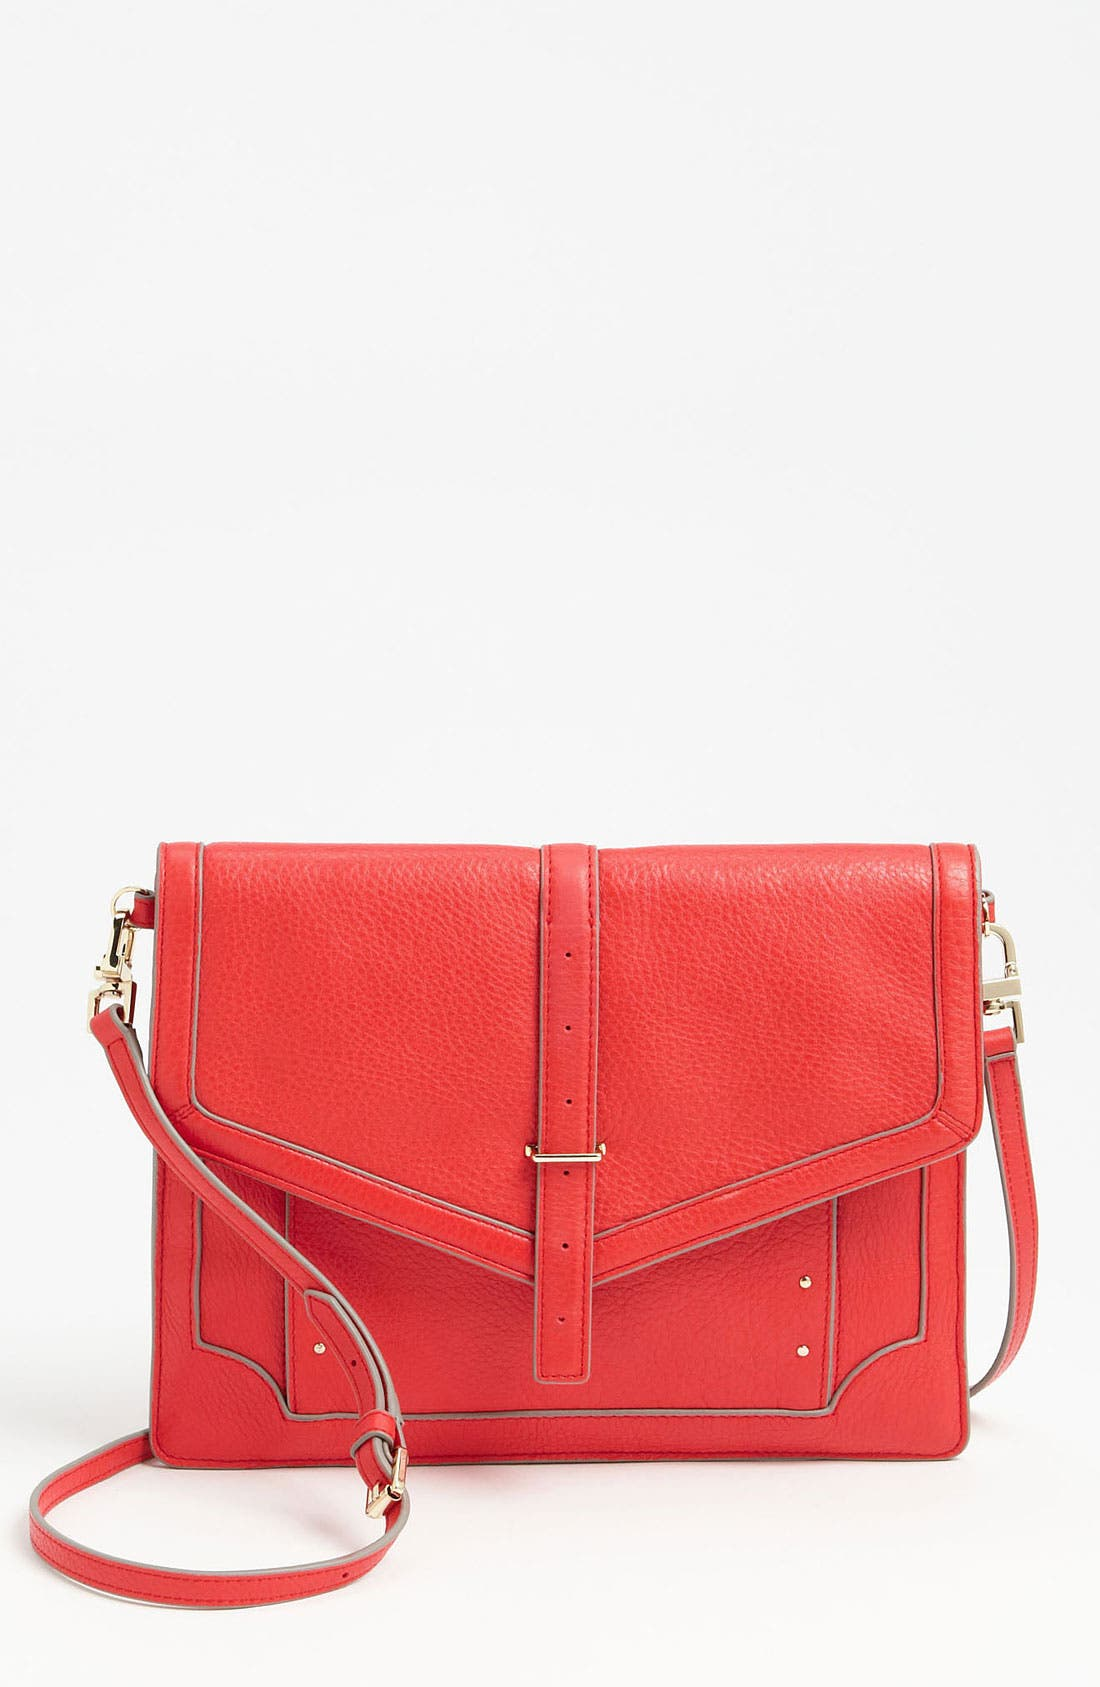 Alternate Image 1 Selected - Tory Burch Leather Crossbody Bag